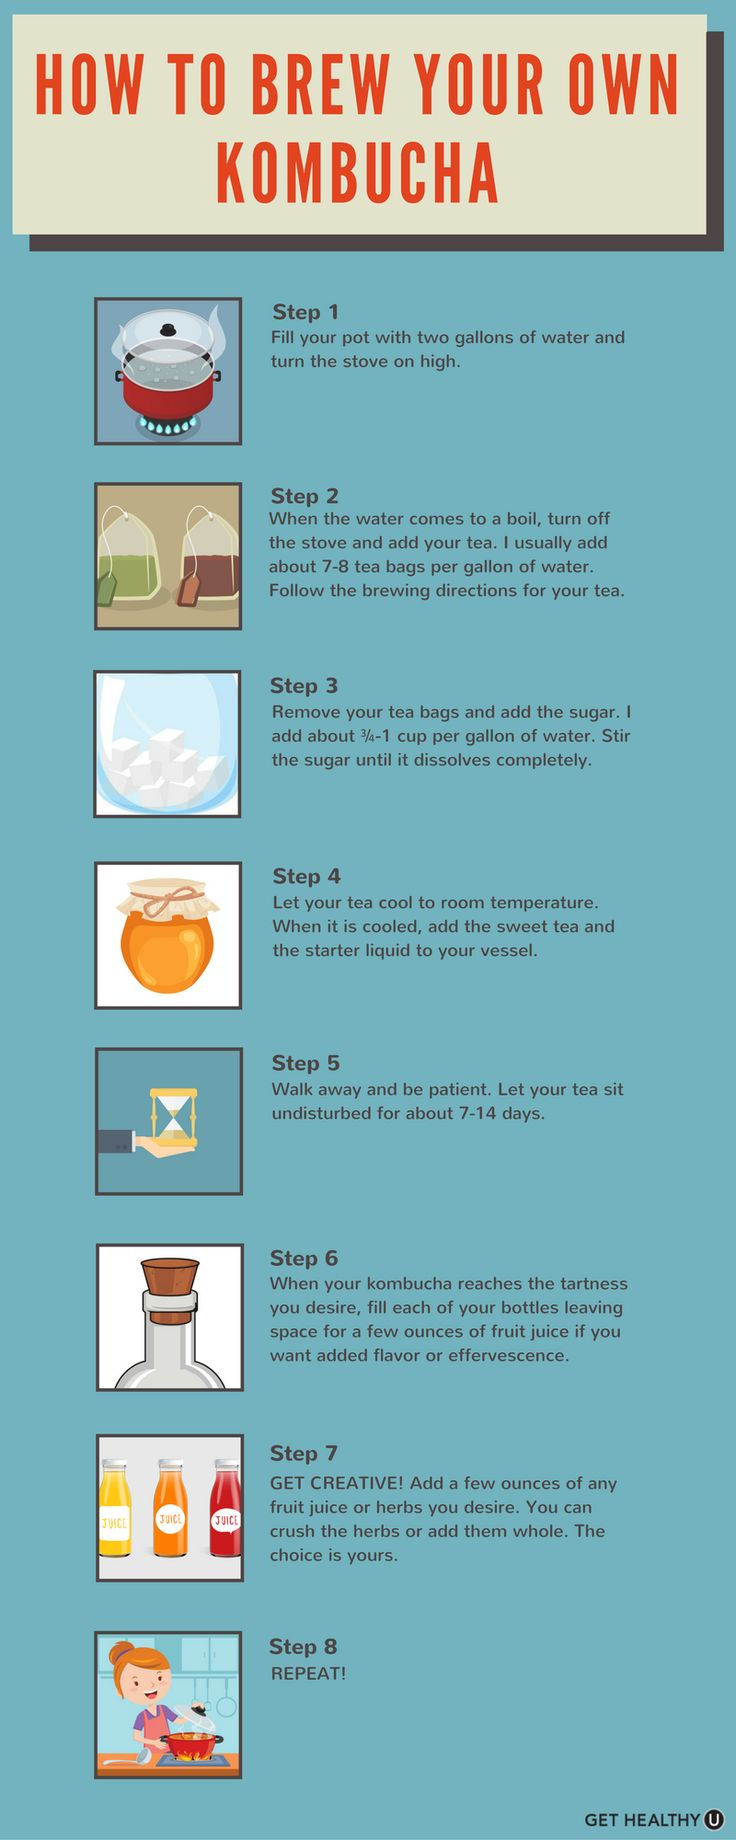 Ever wondered how to make your own kombucha?? Its easier than you think! Follow these steps to make your own kombucha at home!